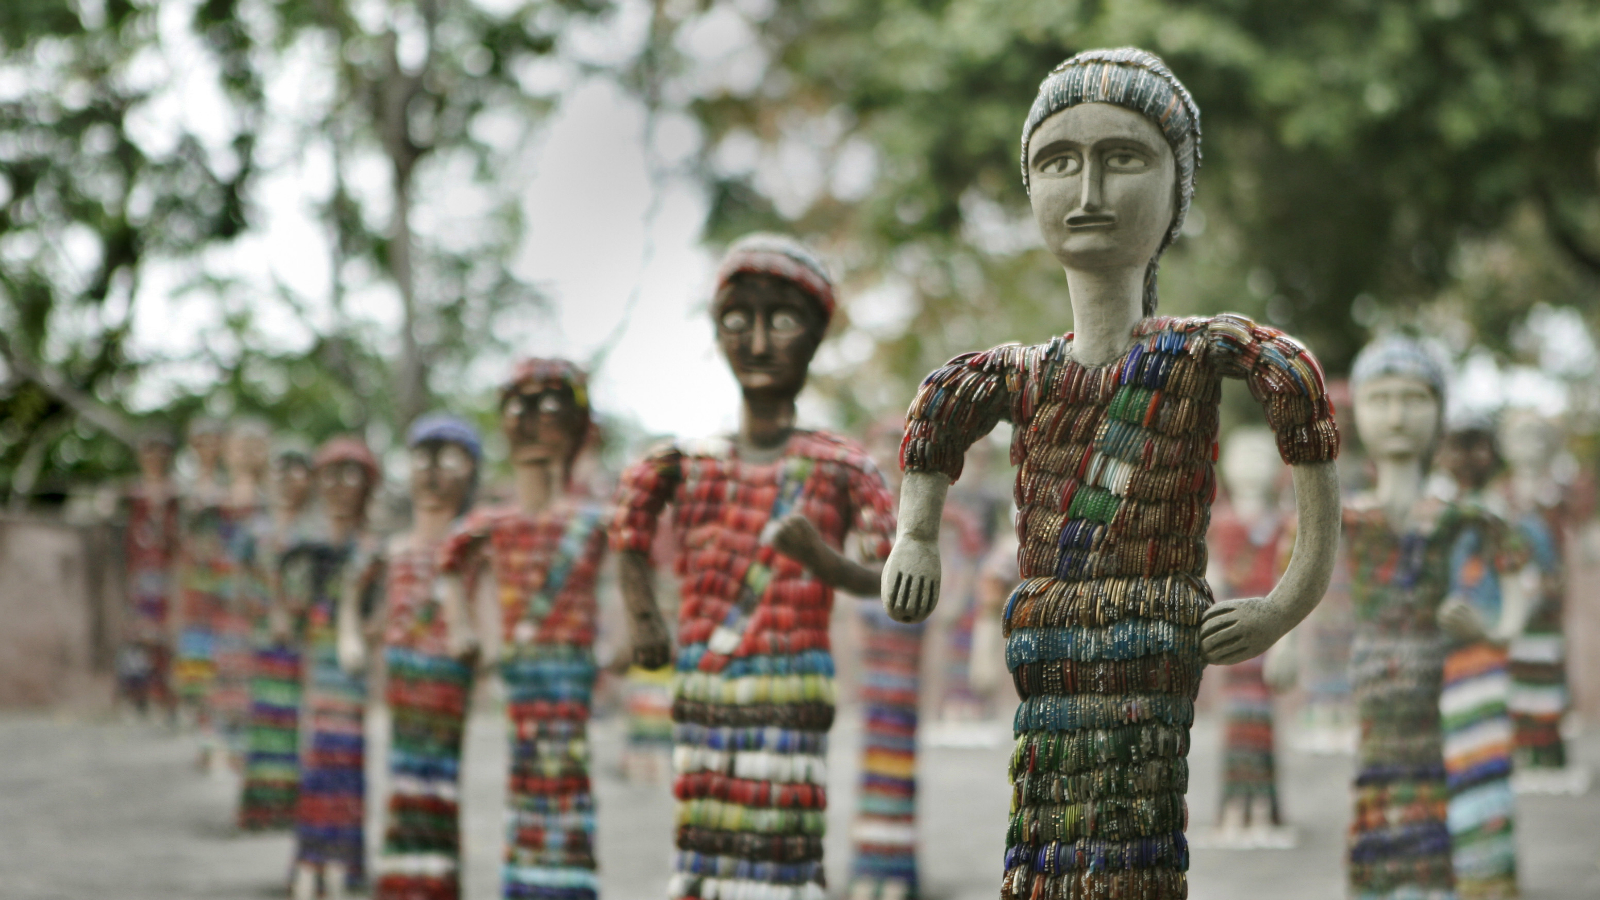 Figures of women studded with broken glass bangles are seen at the Nek Chand Rock Garden in Chandigarh, India, Thursday Dec. 6, 2007. The Rock Garden is a sculpture garden built from recycled industrial and domestic waste. (AP Photo/Aman Sharma)